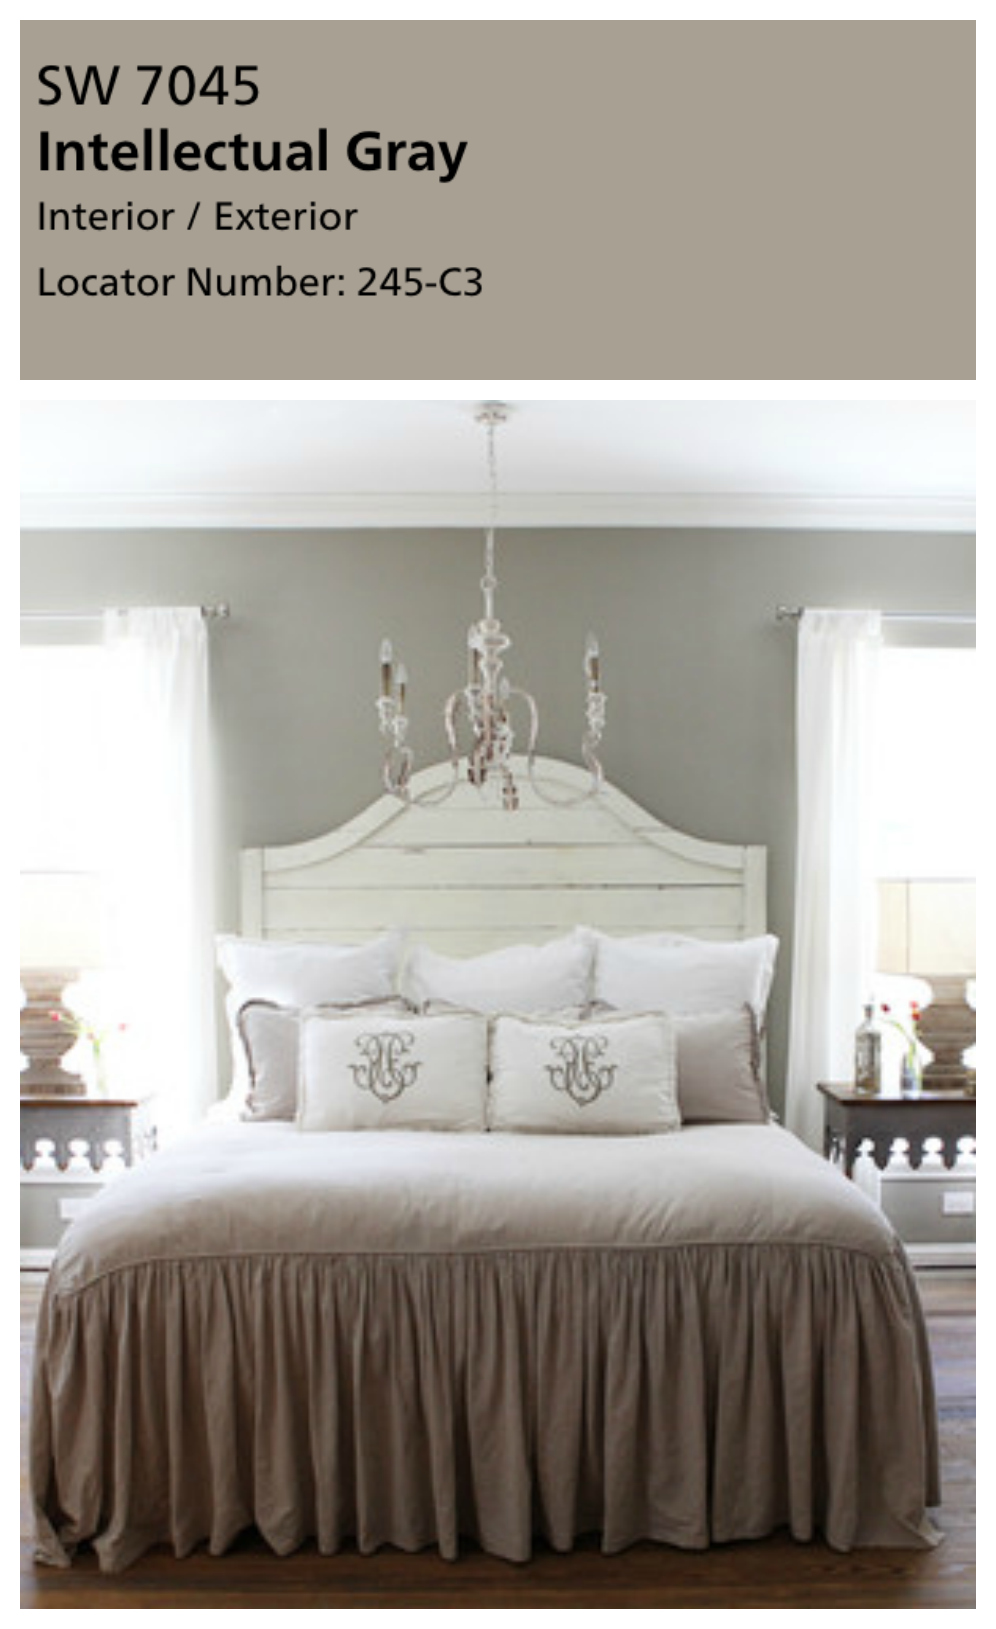 Fixer Upper Master Bedroom paint color. A master bedroom is the perfect place for sherwin Williams Intellectual Gray. This color has a beautiful warmth to it, especially against a wood floor. Joanna used this color for her master bedroom and I just can't get enough! Be careful though, if your bedroom doesn't have great natural light, this color might be a mistake.